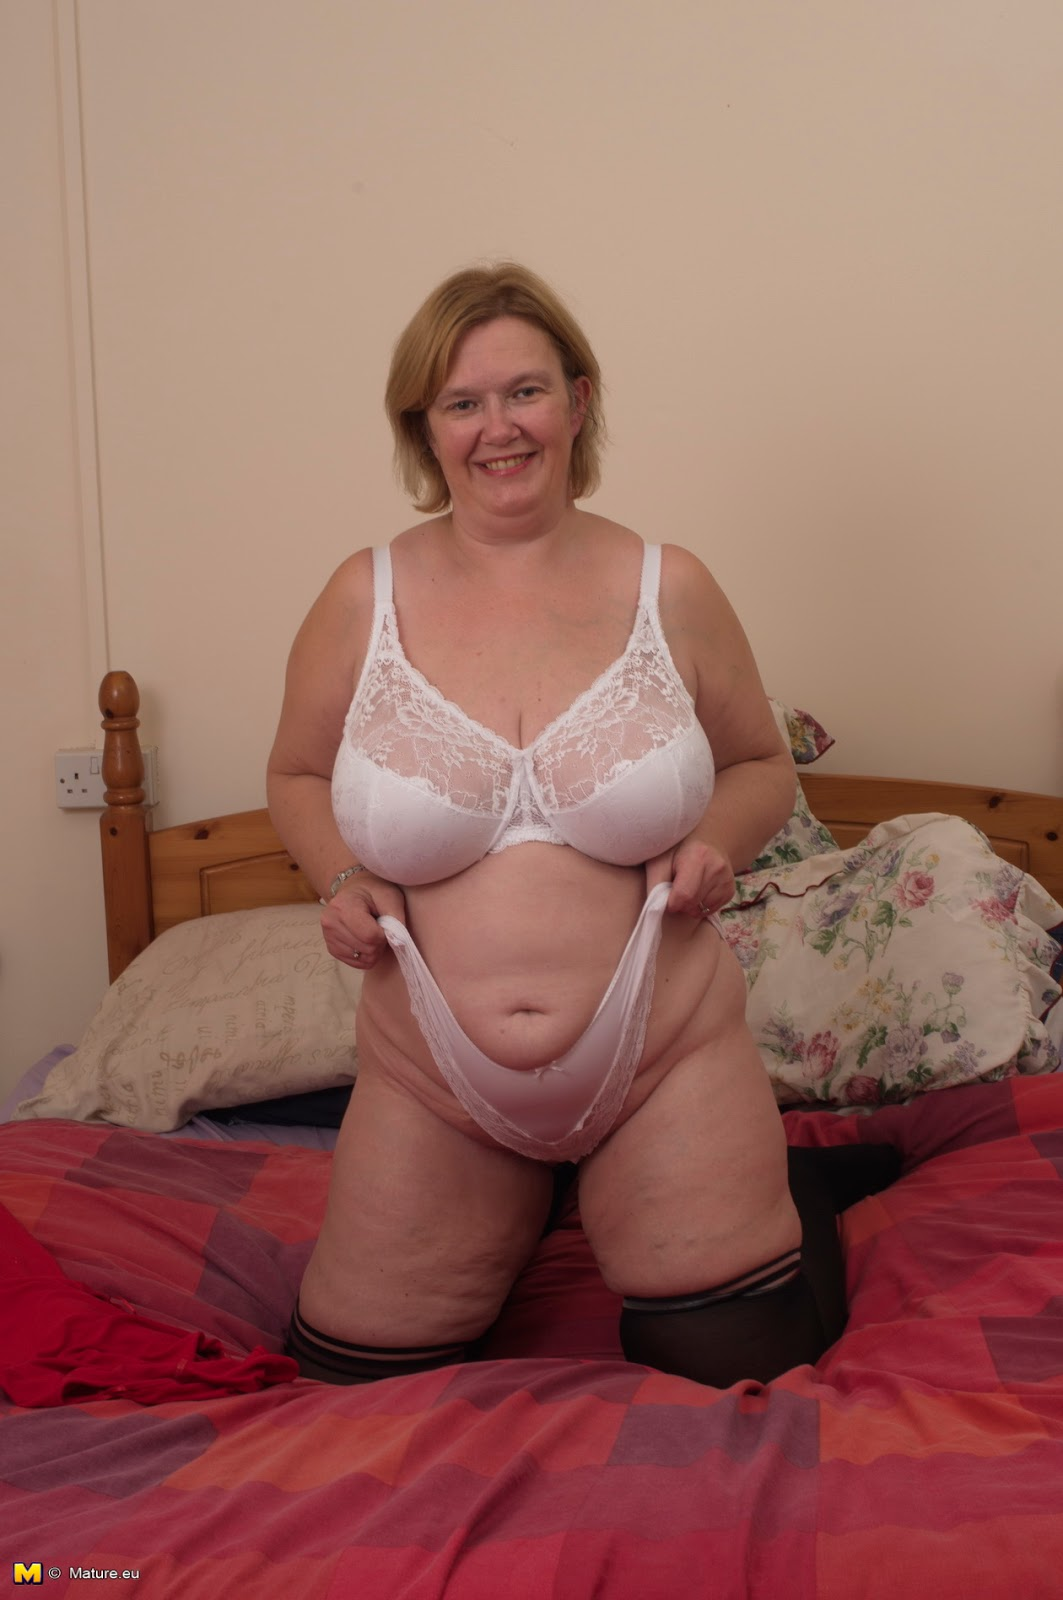 Busty chubby blonde loves to play with her juicy pussy 4 u - 3 7